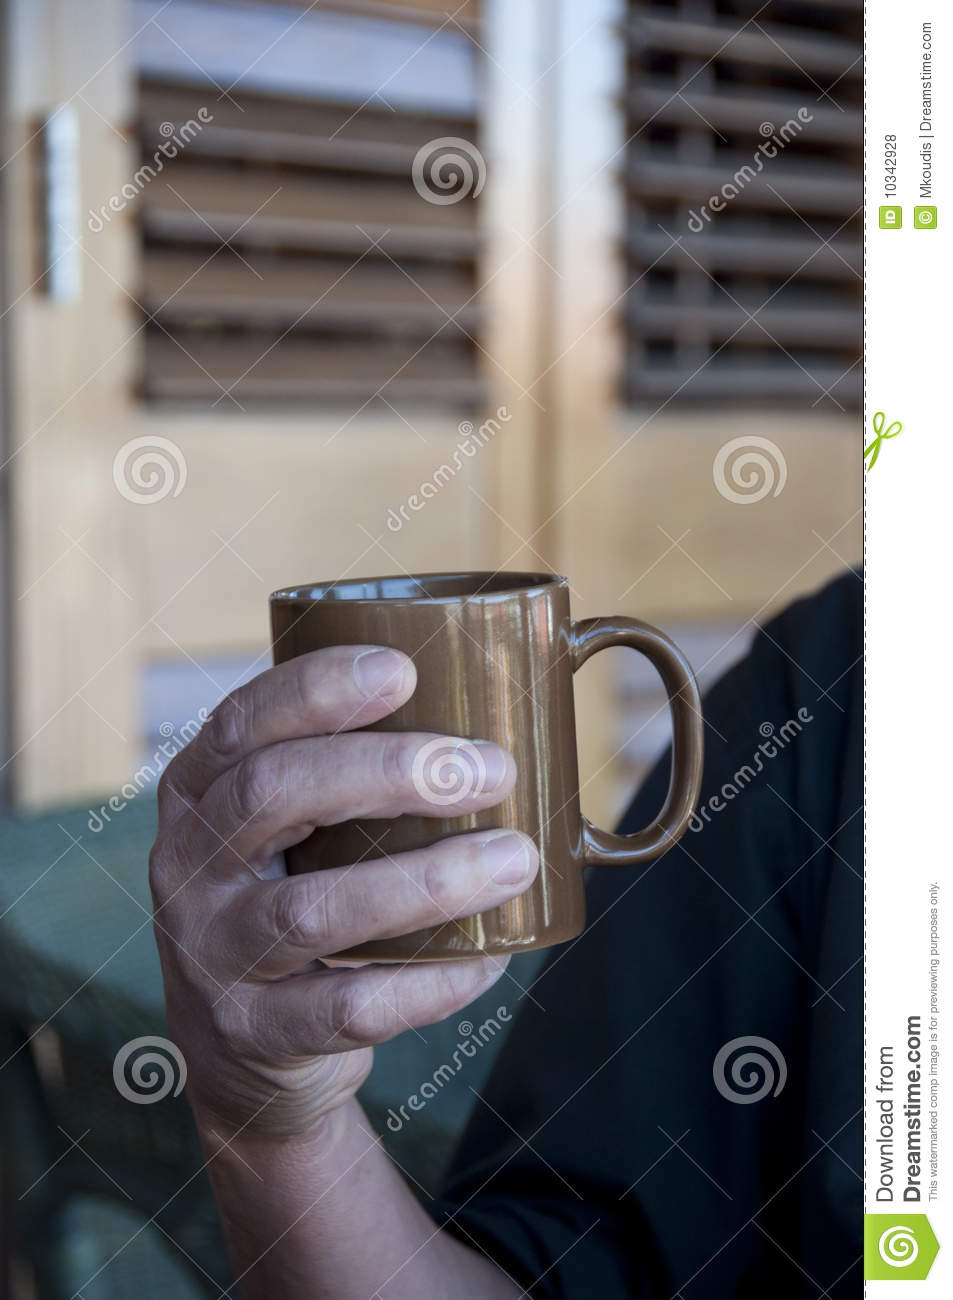 Man Holding A Hot Drink In A Mug Royalty Free Stock Photos